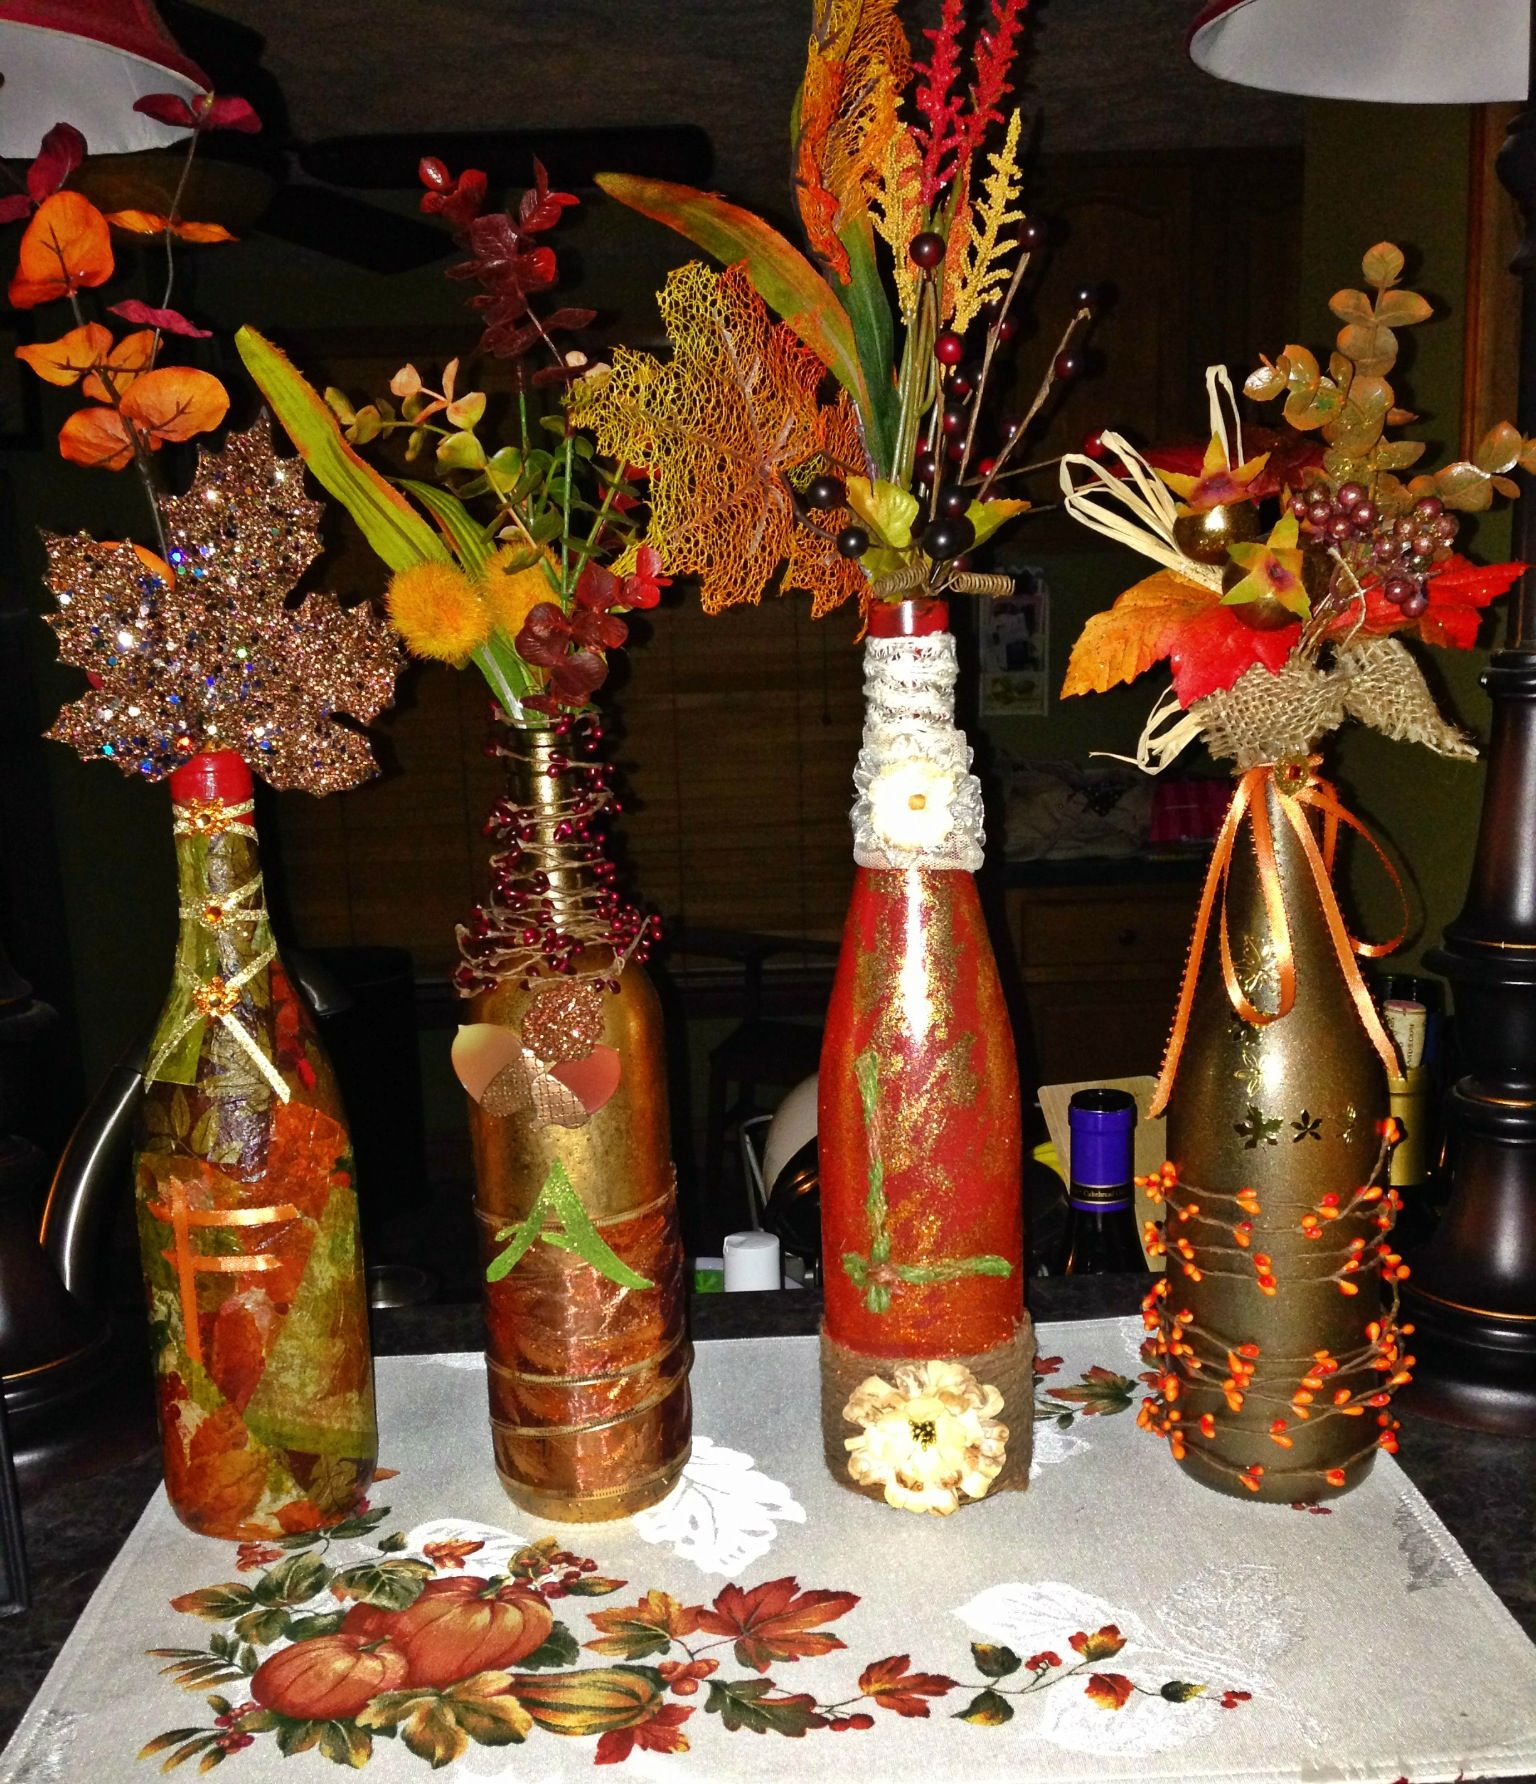 What to do with empty wine bottles - Diy Fall Wine Bottles Spray Paint Empty Wine Bottles And Get Creative